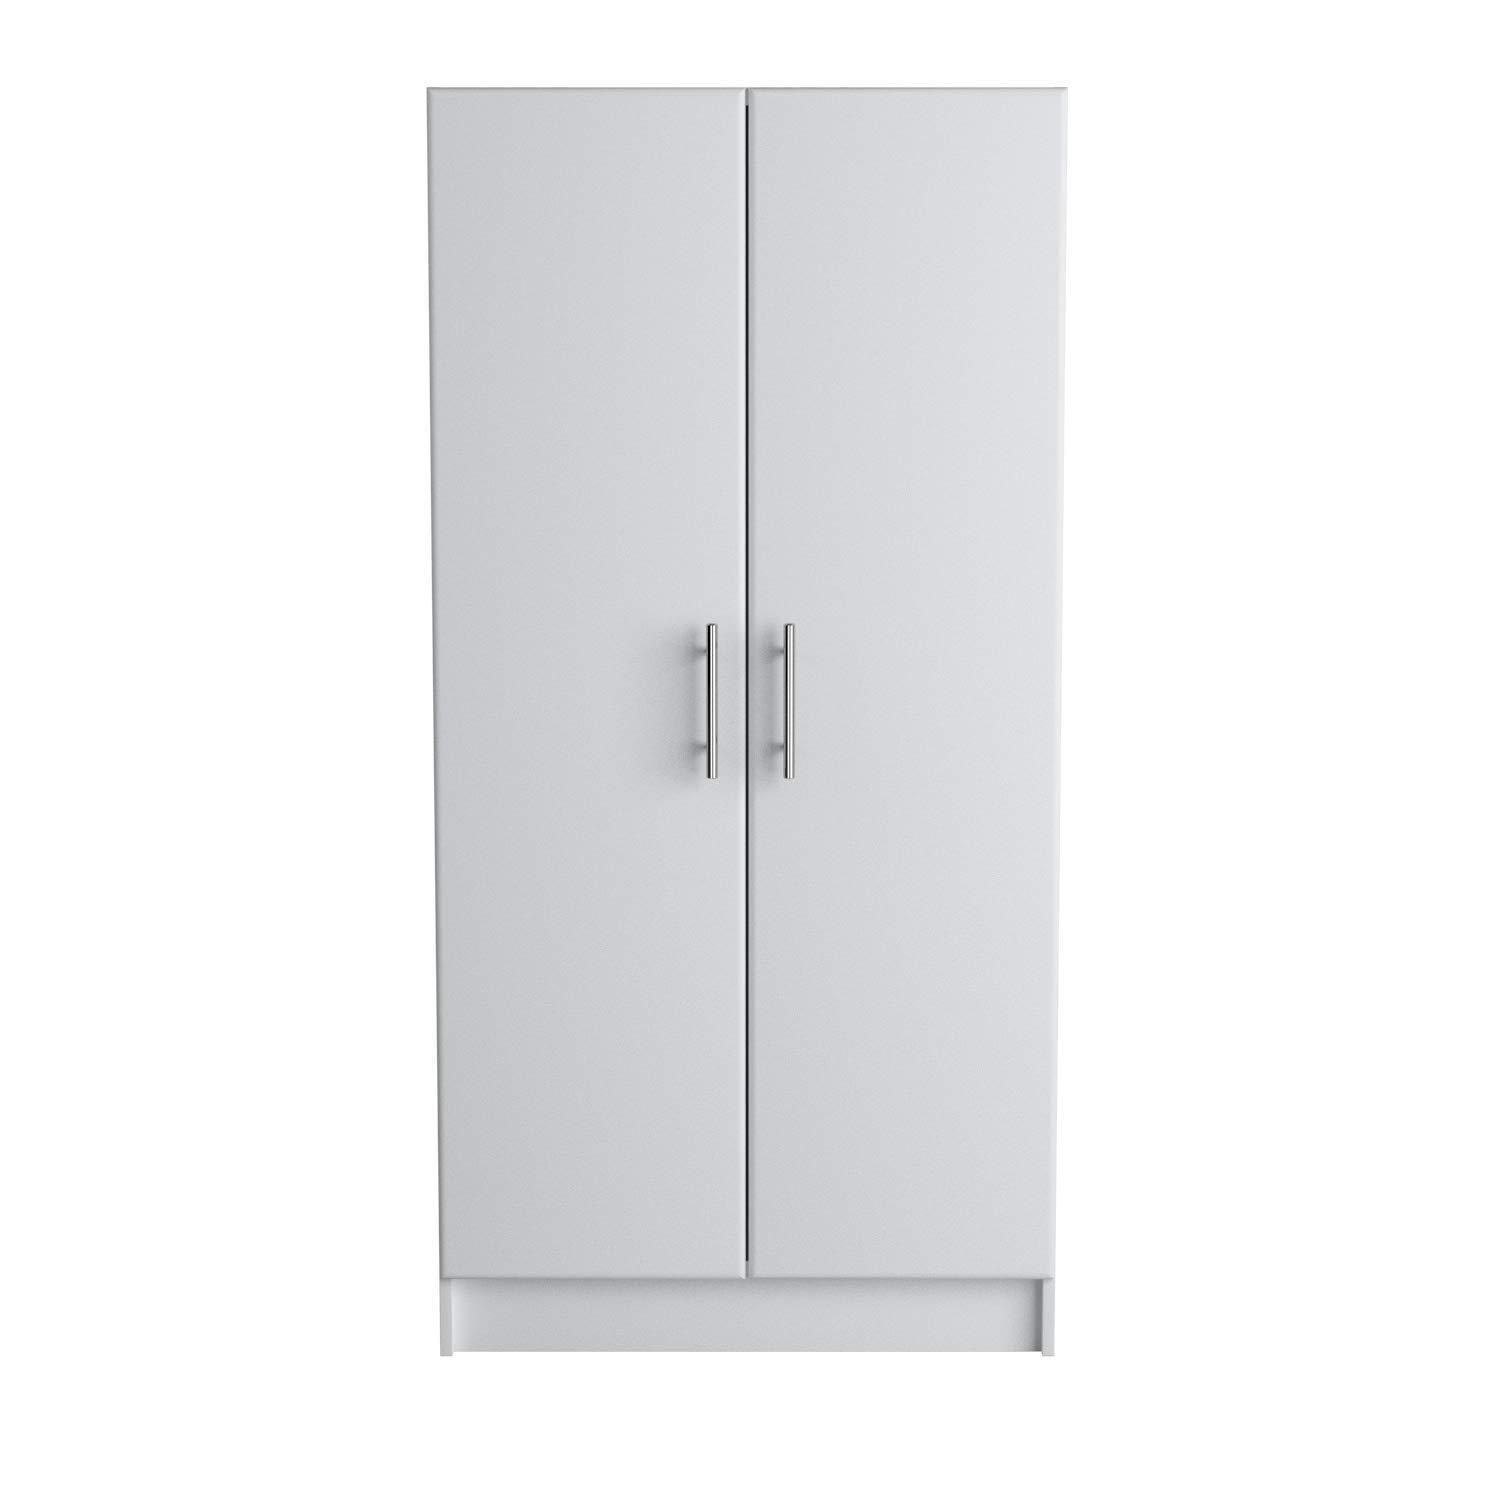 Tall 2 Door White Storage Cabinet Kitchen Utility Room Organizer Garage Shop New 64886 White Storage Cabinets Kitchen Cabinet Storage Utility Room Organization